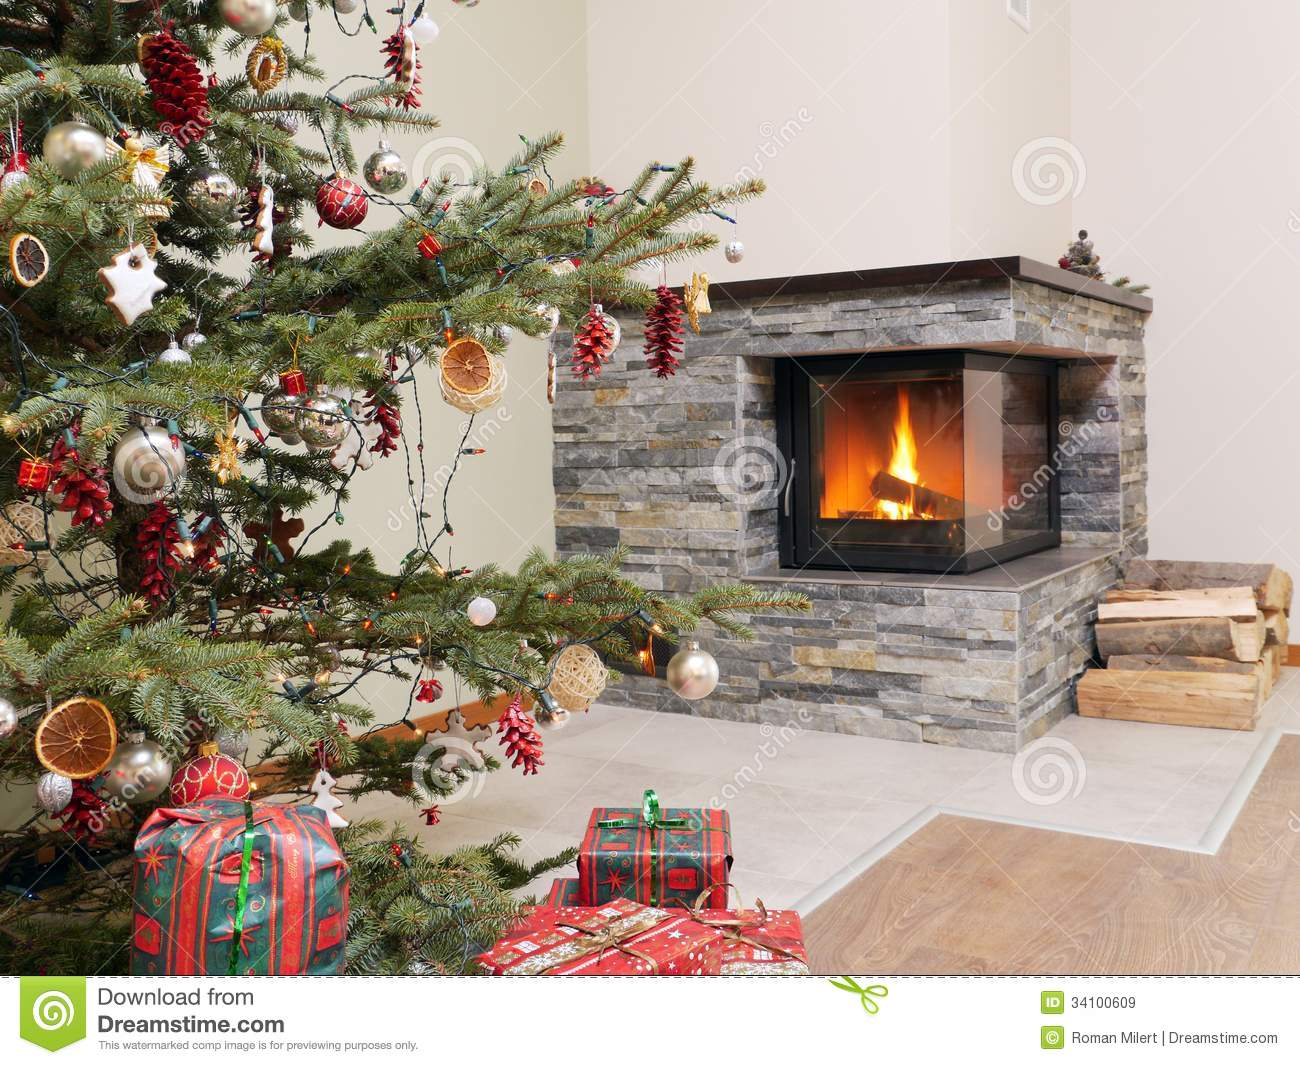 Christmas Tree By The Fireplace Stock Image - Image: 34100609